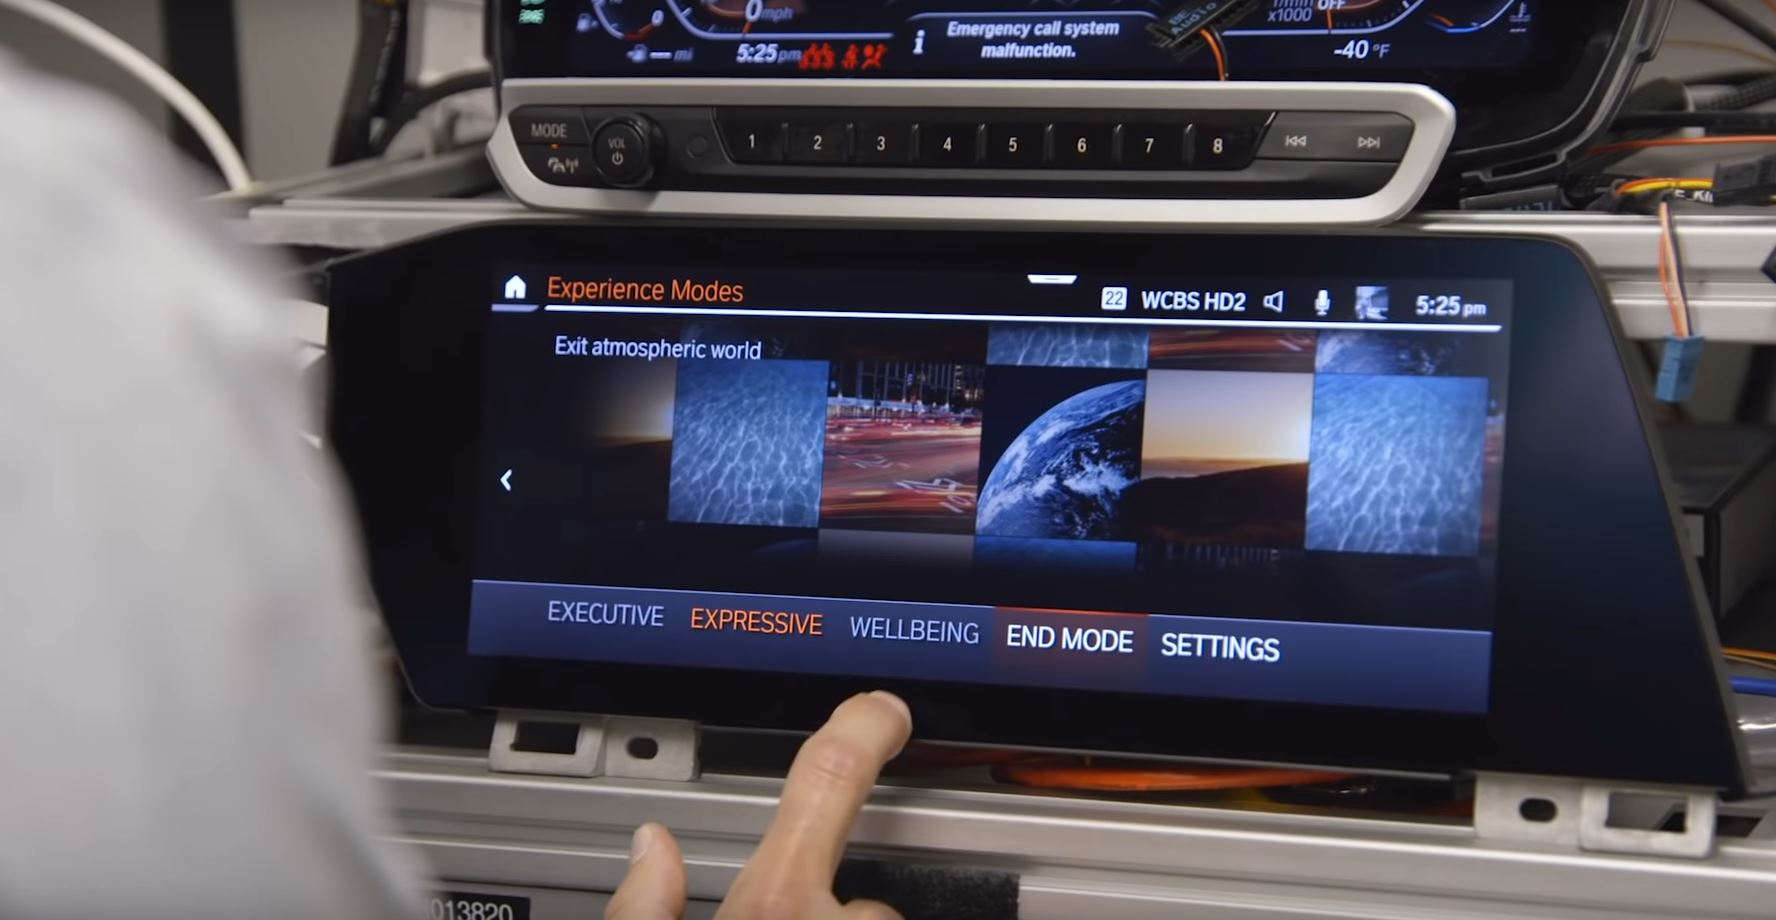 bmw experience modes